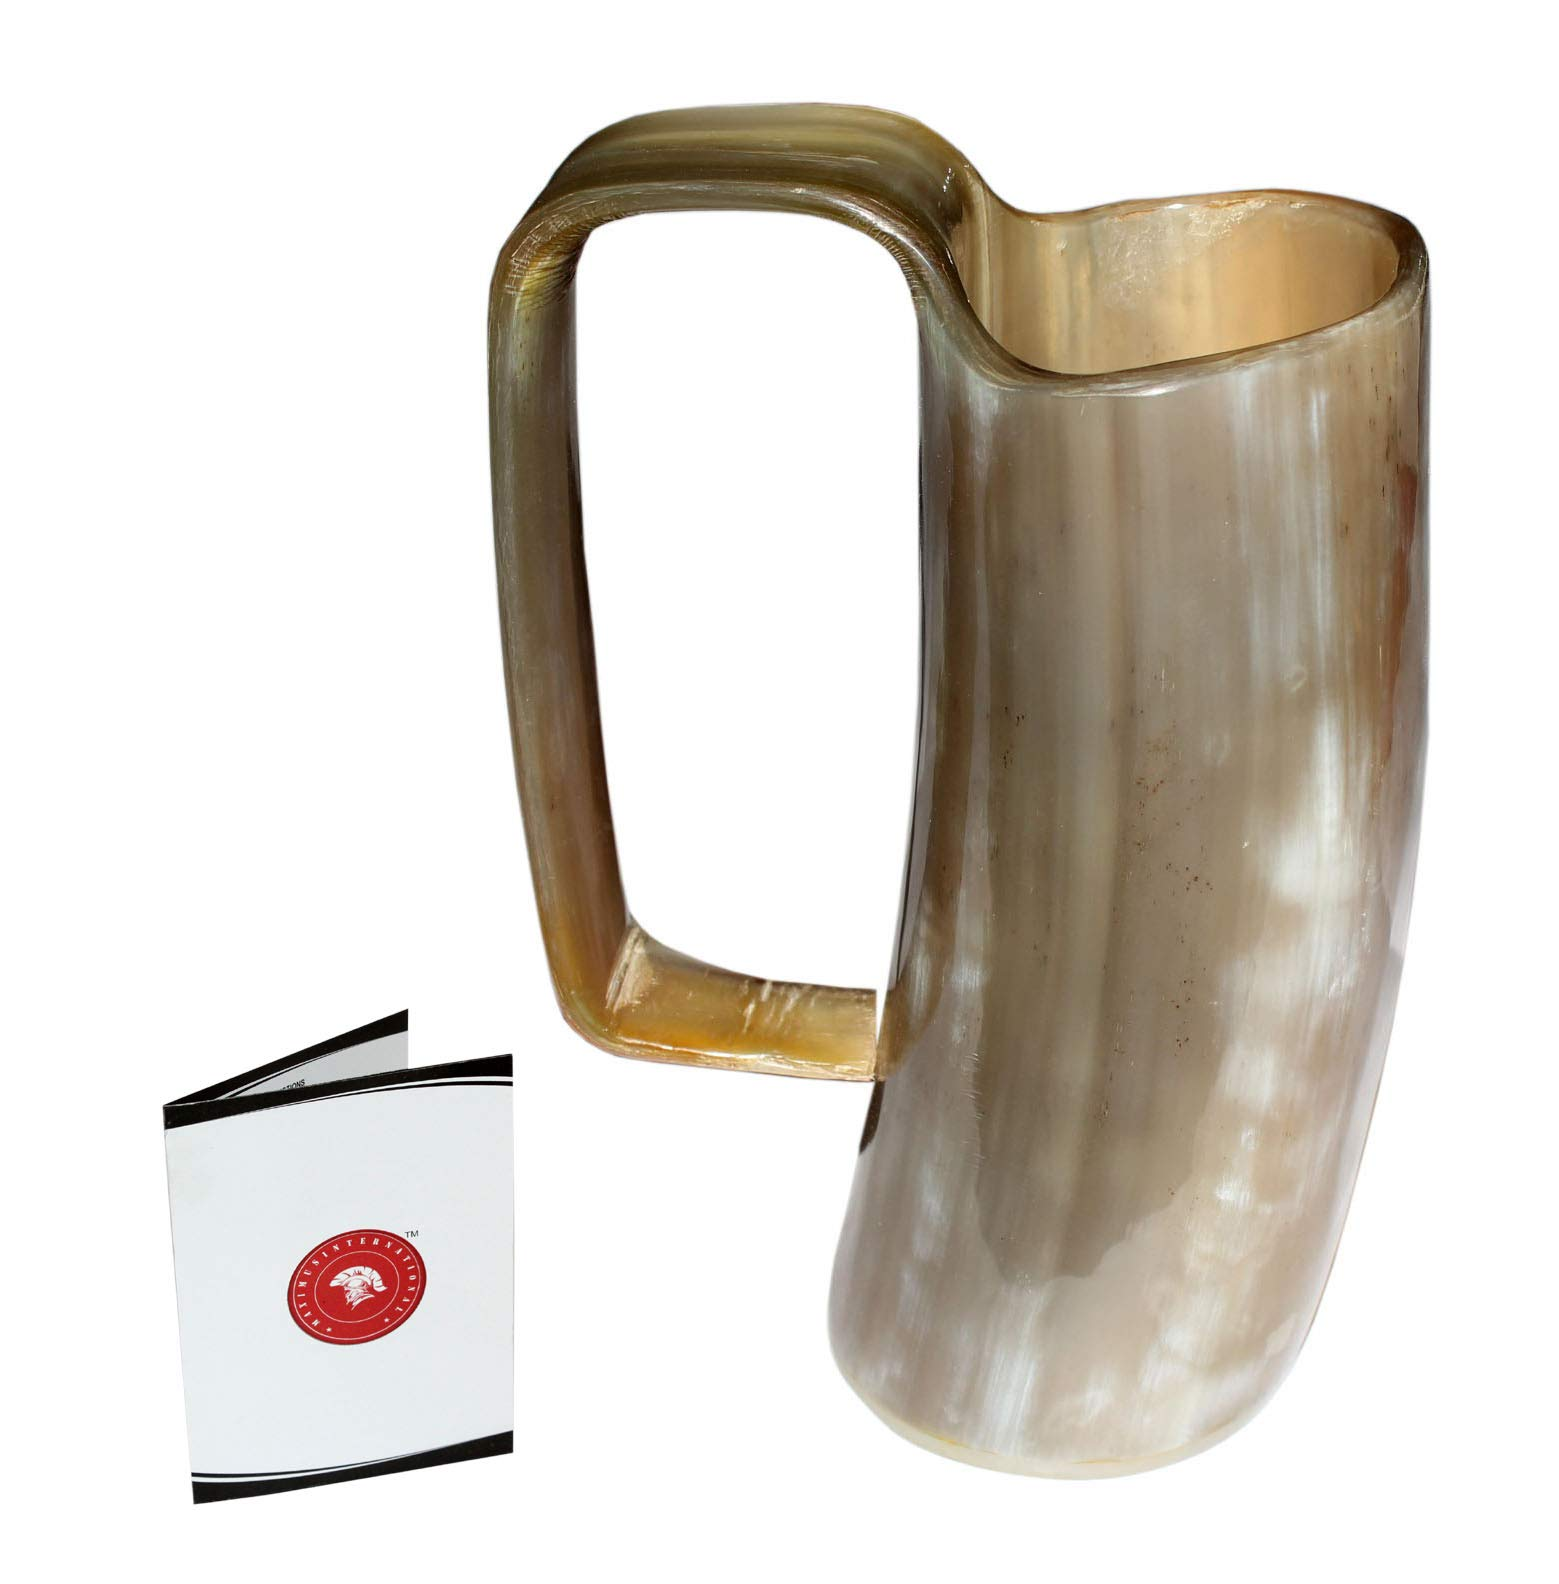 5MoonSun5's VIKING DRINKING HORN MUG Handcrafted Ox Cup Goblet - Drink Mead & Beer Like Game of Thrones With This Large Ale Stein - A Perfect Present For Real Men (HBCUP-572) sq